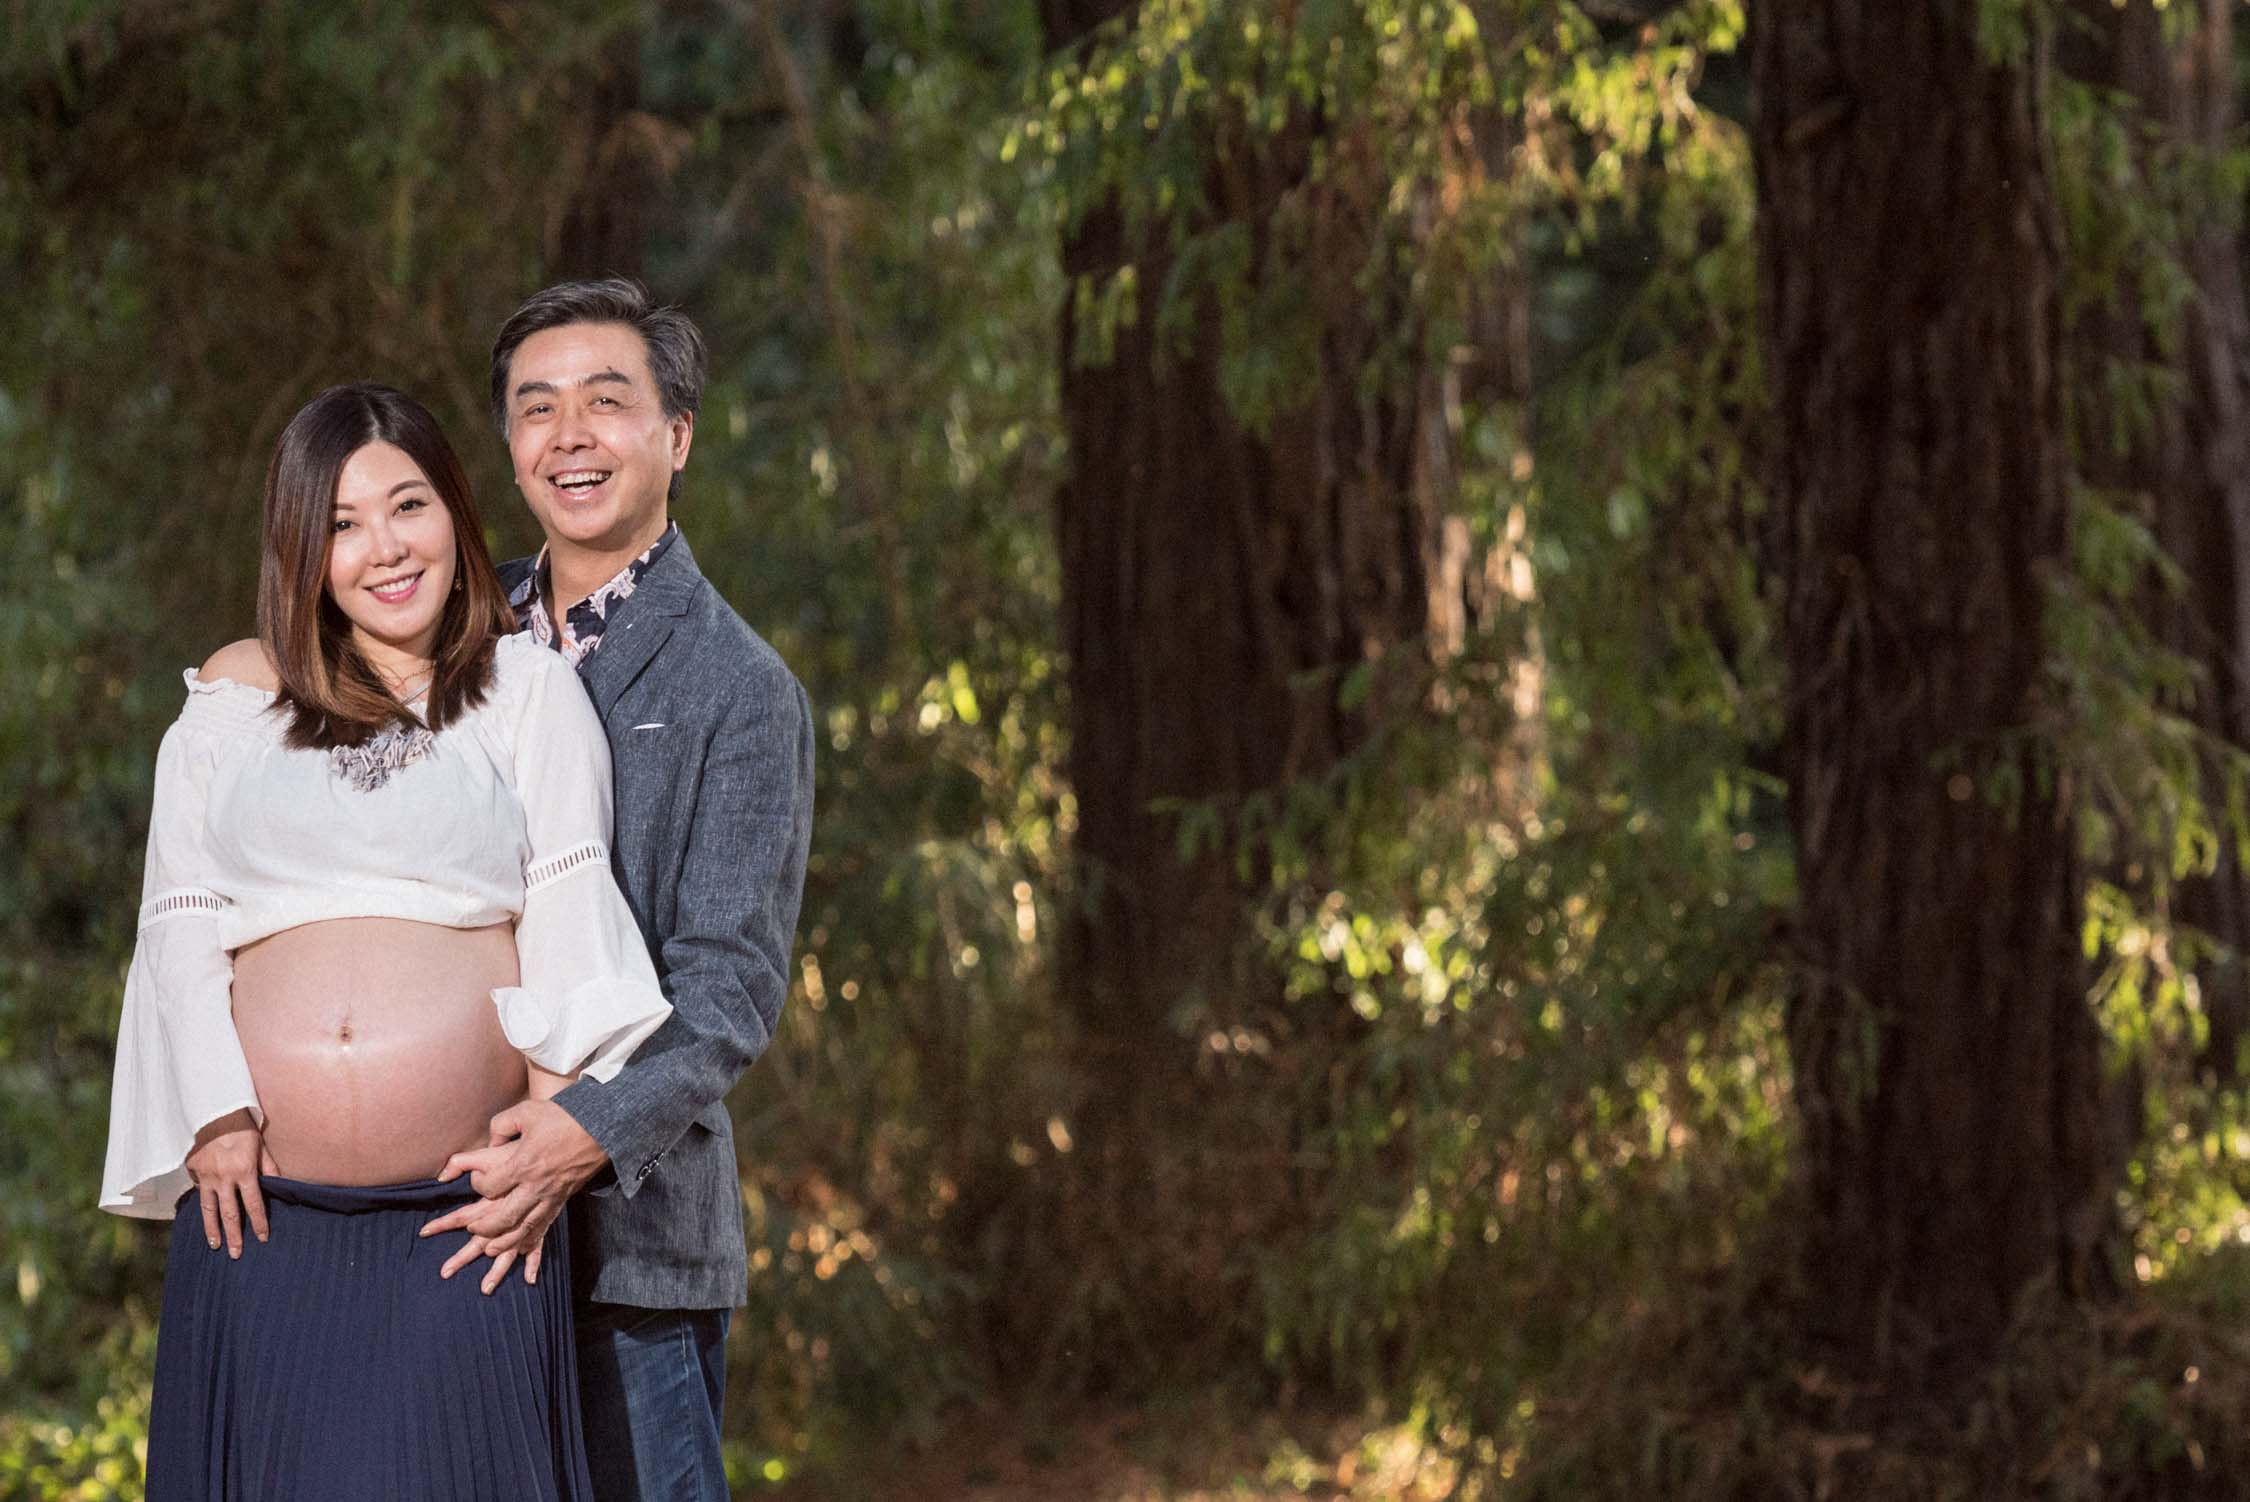 26_goldengatepark_maternity_photographer.jpg